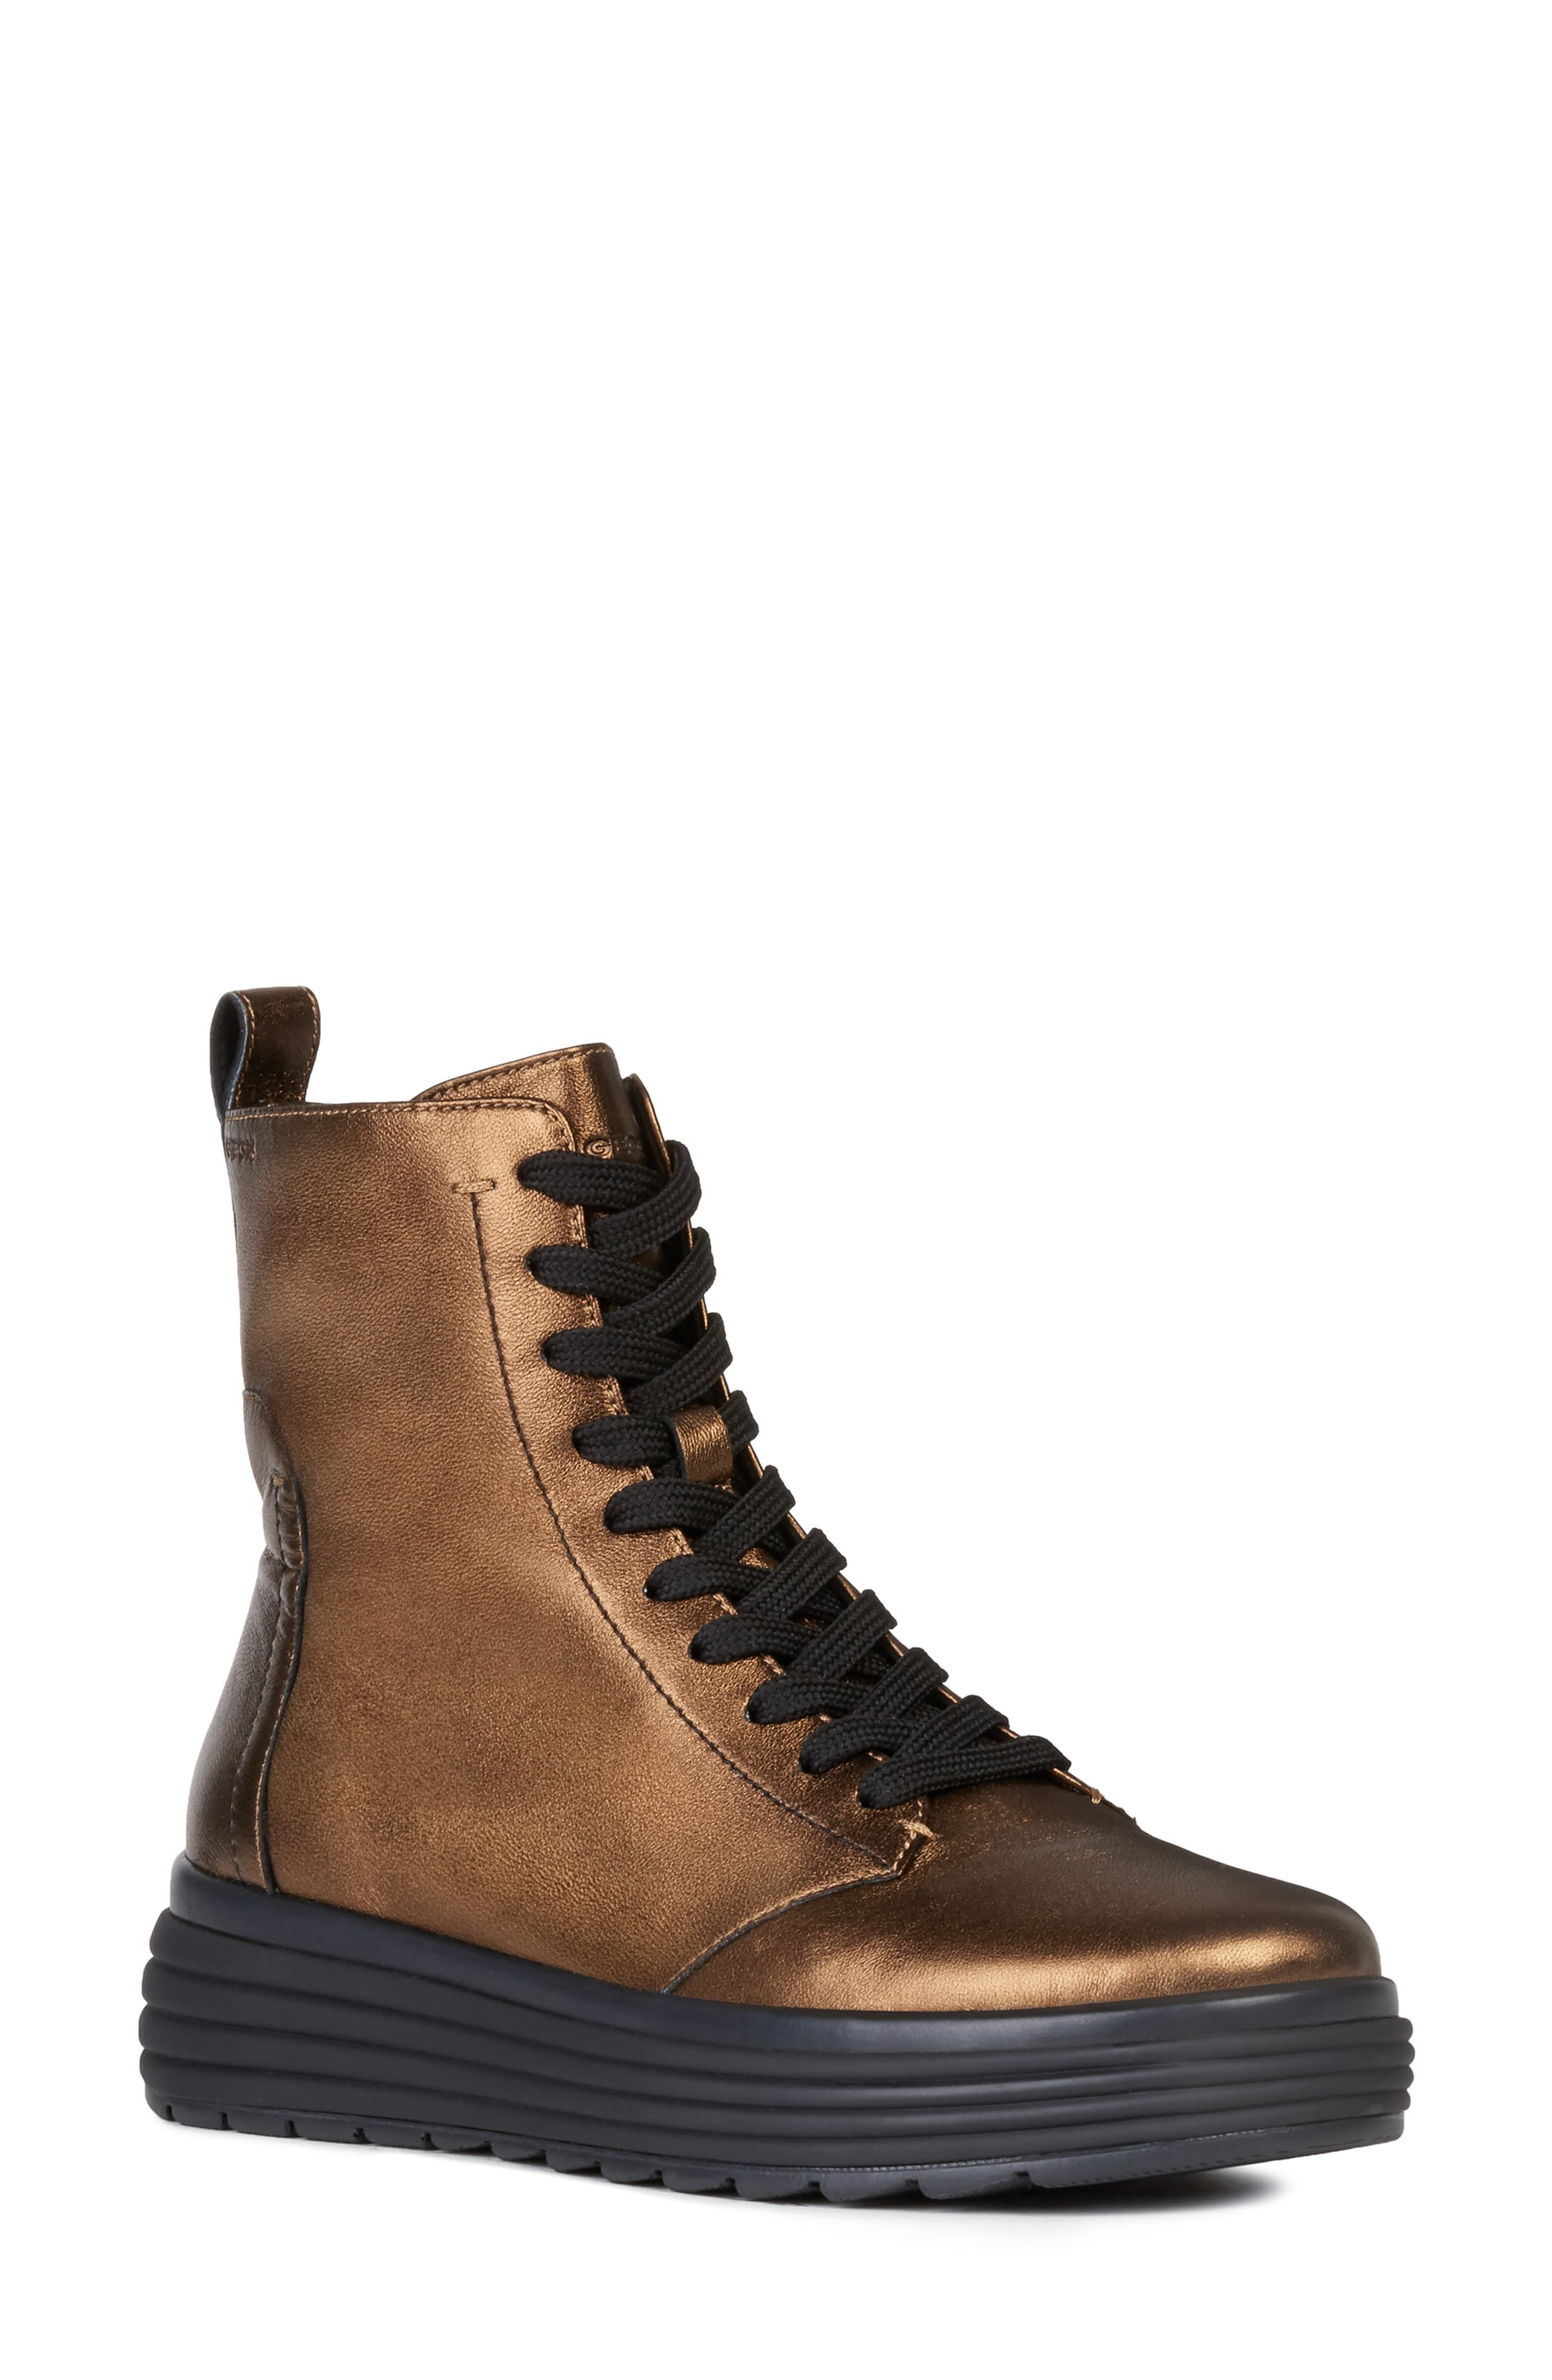 Mus Demonio monitor  Geox Phaolae Boot (Women) | Nordstrom | Boots, Womens boots, Lace up boots